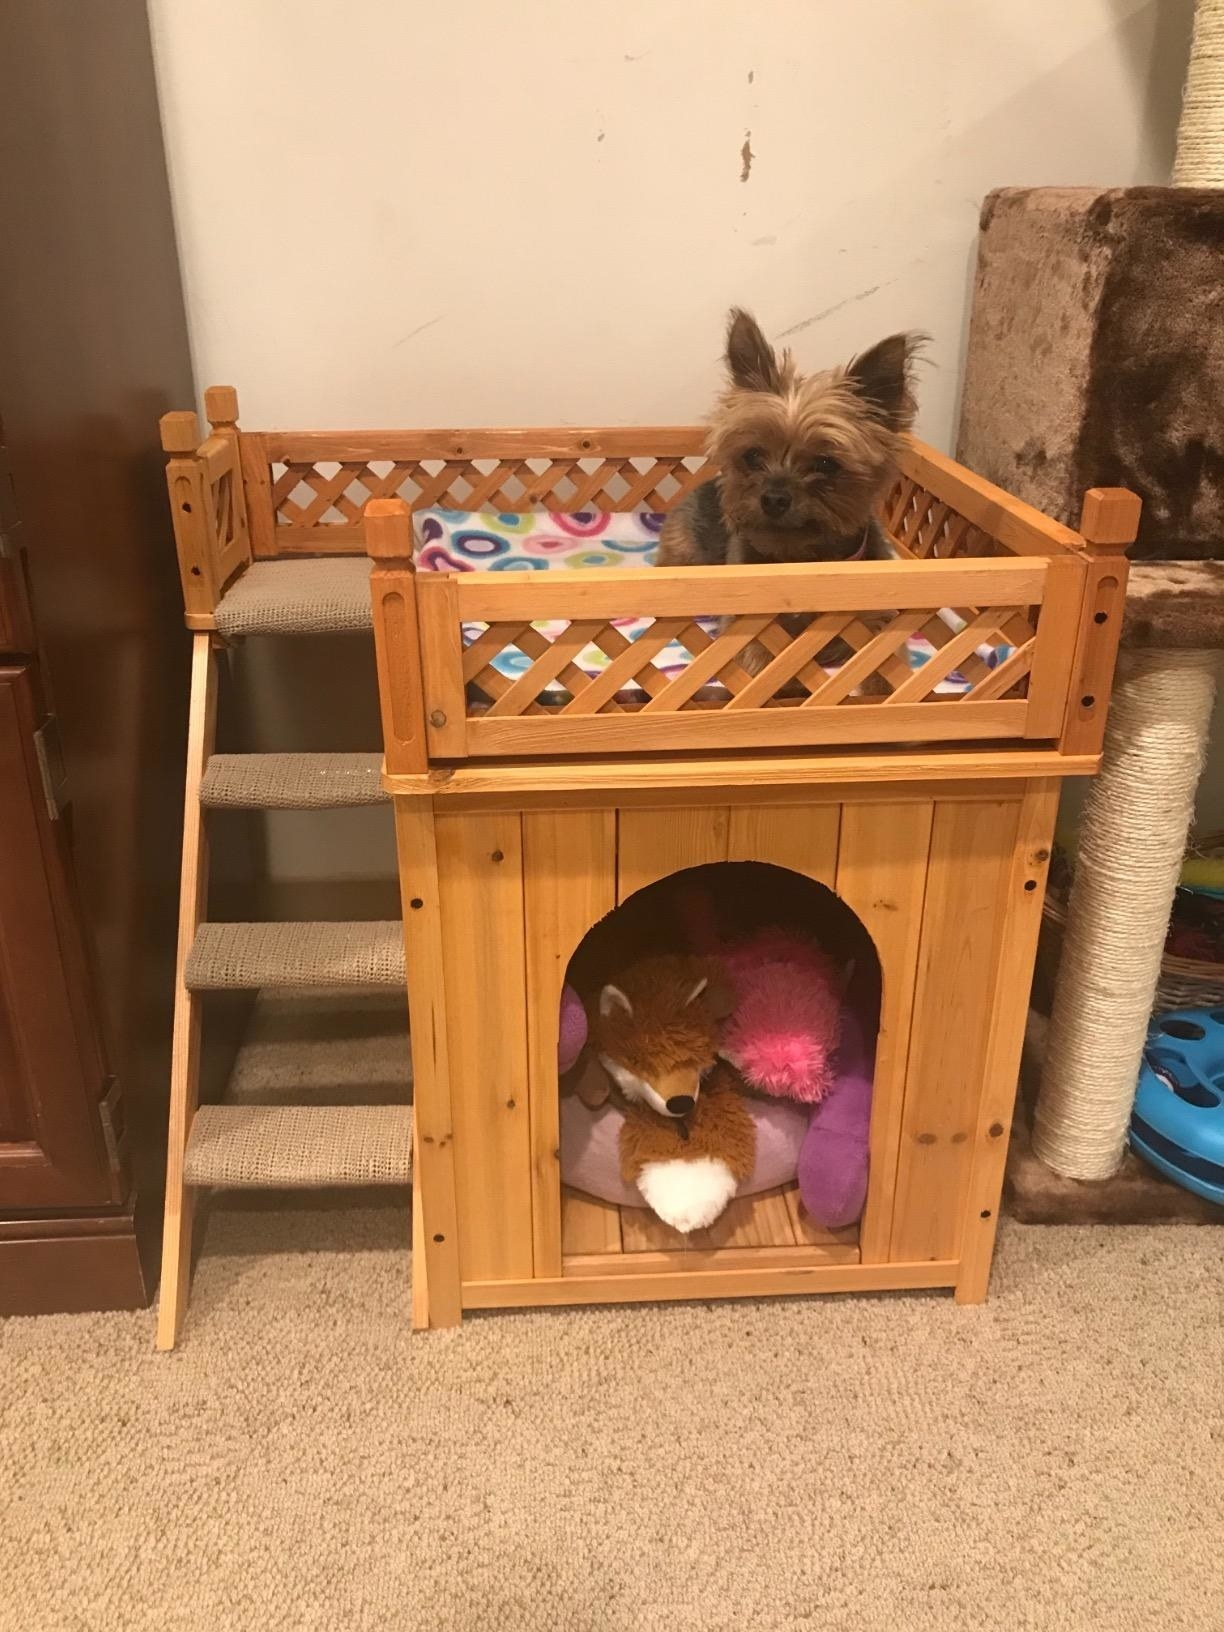 The pet bed, which is made of natural stain wood, and which has a small hutch on the bottom, a deck with railings on top, and a small staircase connecting the two